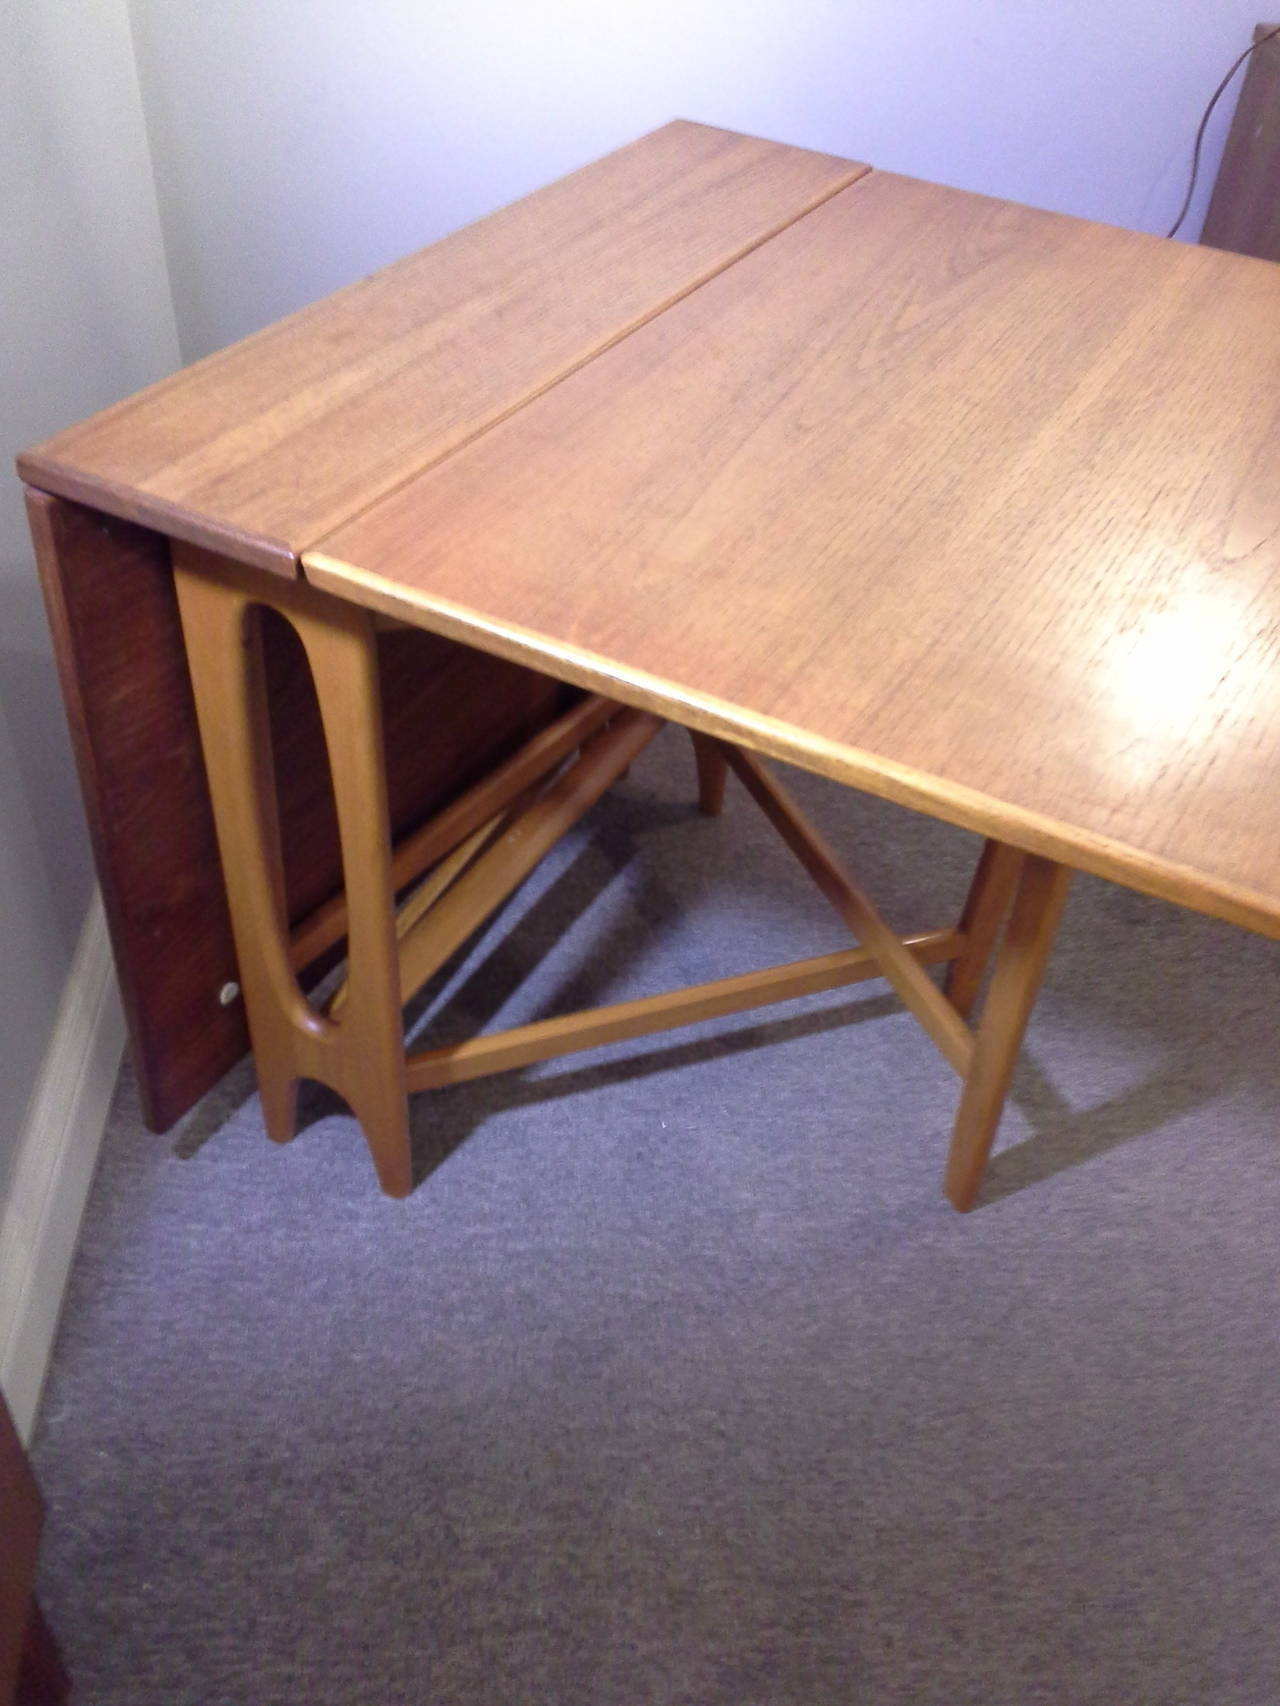 Teak Mid-Century Modern Bruno Mathsson Style  Drop Leaf Dining Table, The table is made and marked Made in Norway, Nice Design & Style, The table measures 29